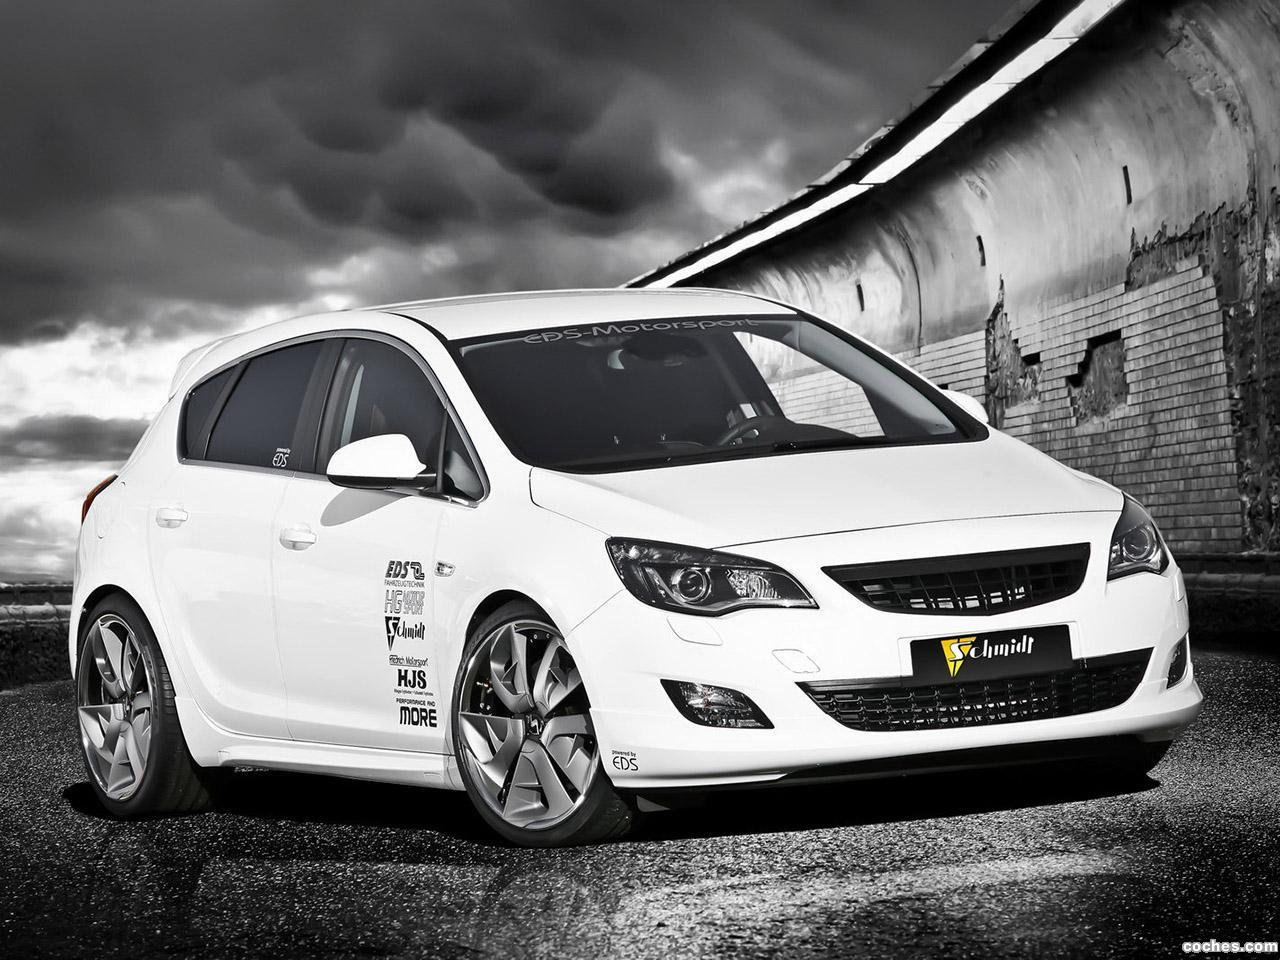 opel_astra-opc-eds-2011_r4